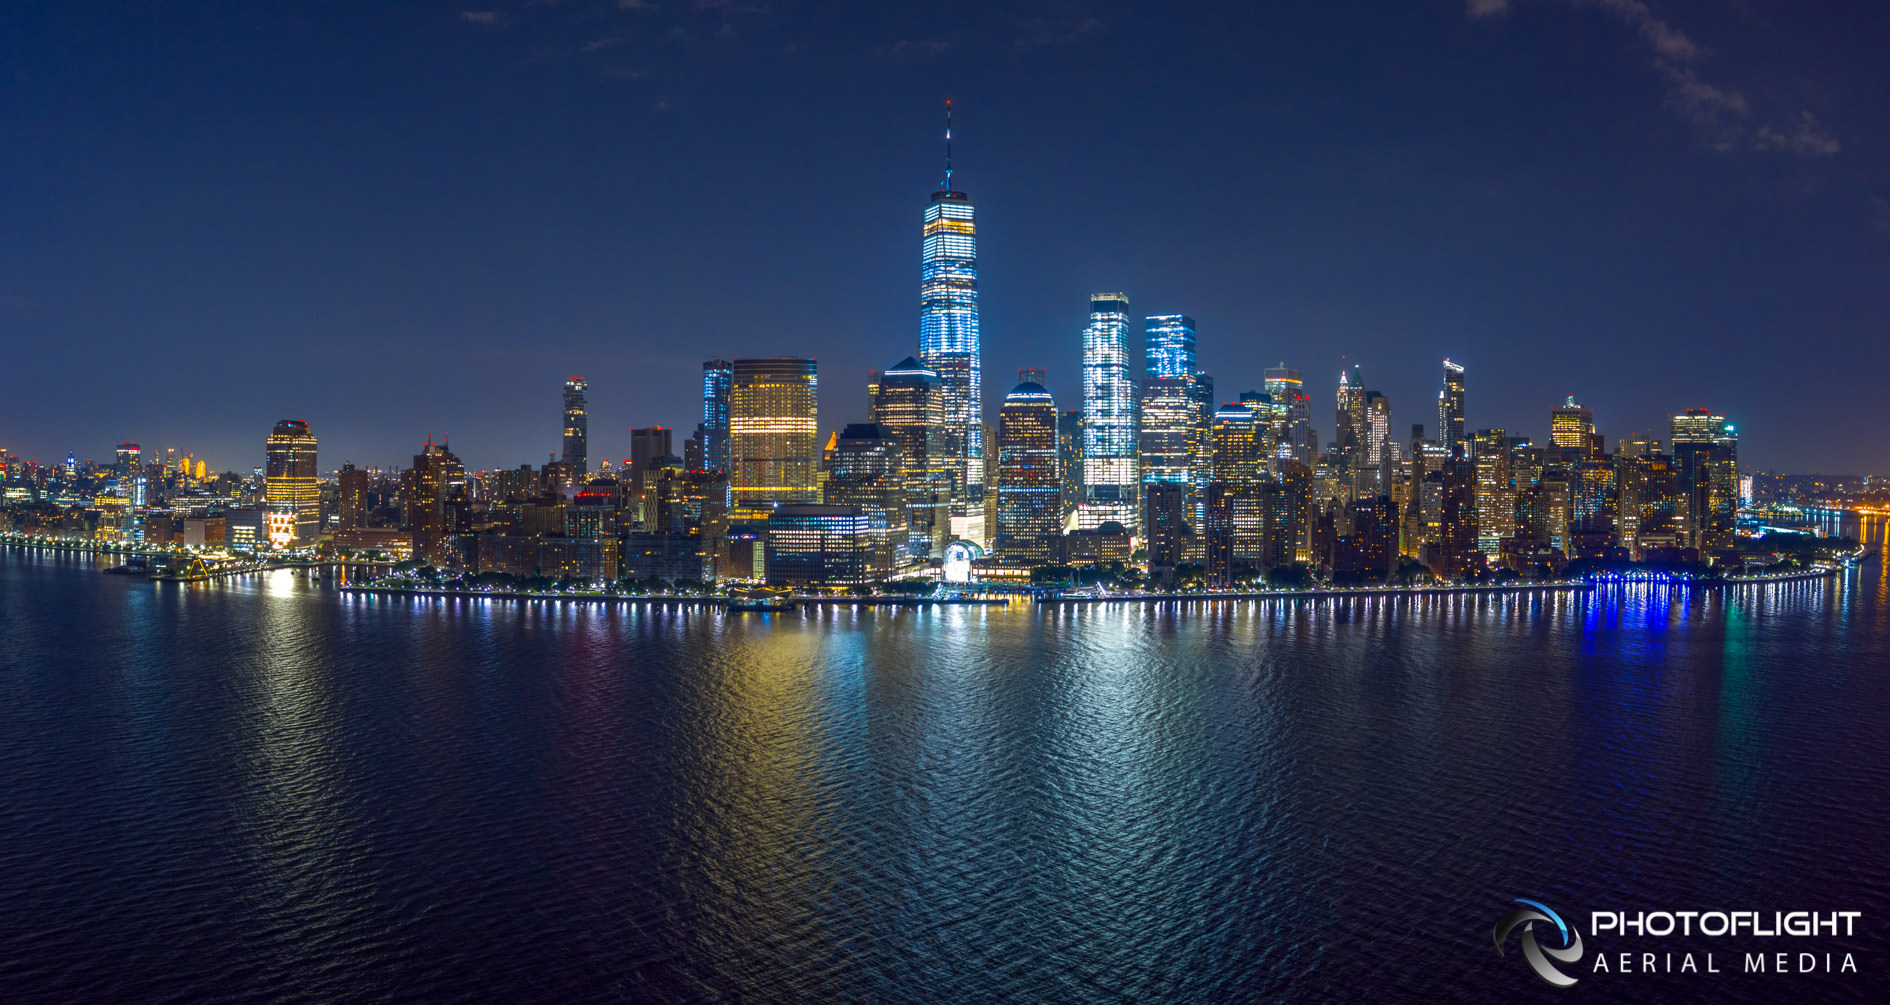 Manhattan Night Skyline, Lower Manhattan, Financial district, NYC aerial drone photo by PhotoFlight Aerial Media Subject to copyright ©Photoflight Aerial Media